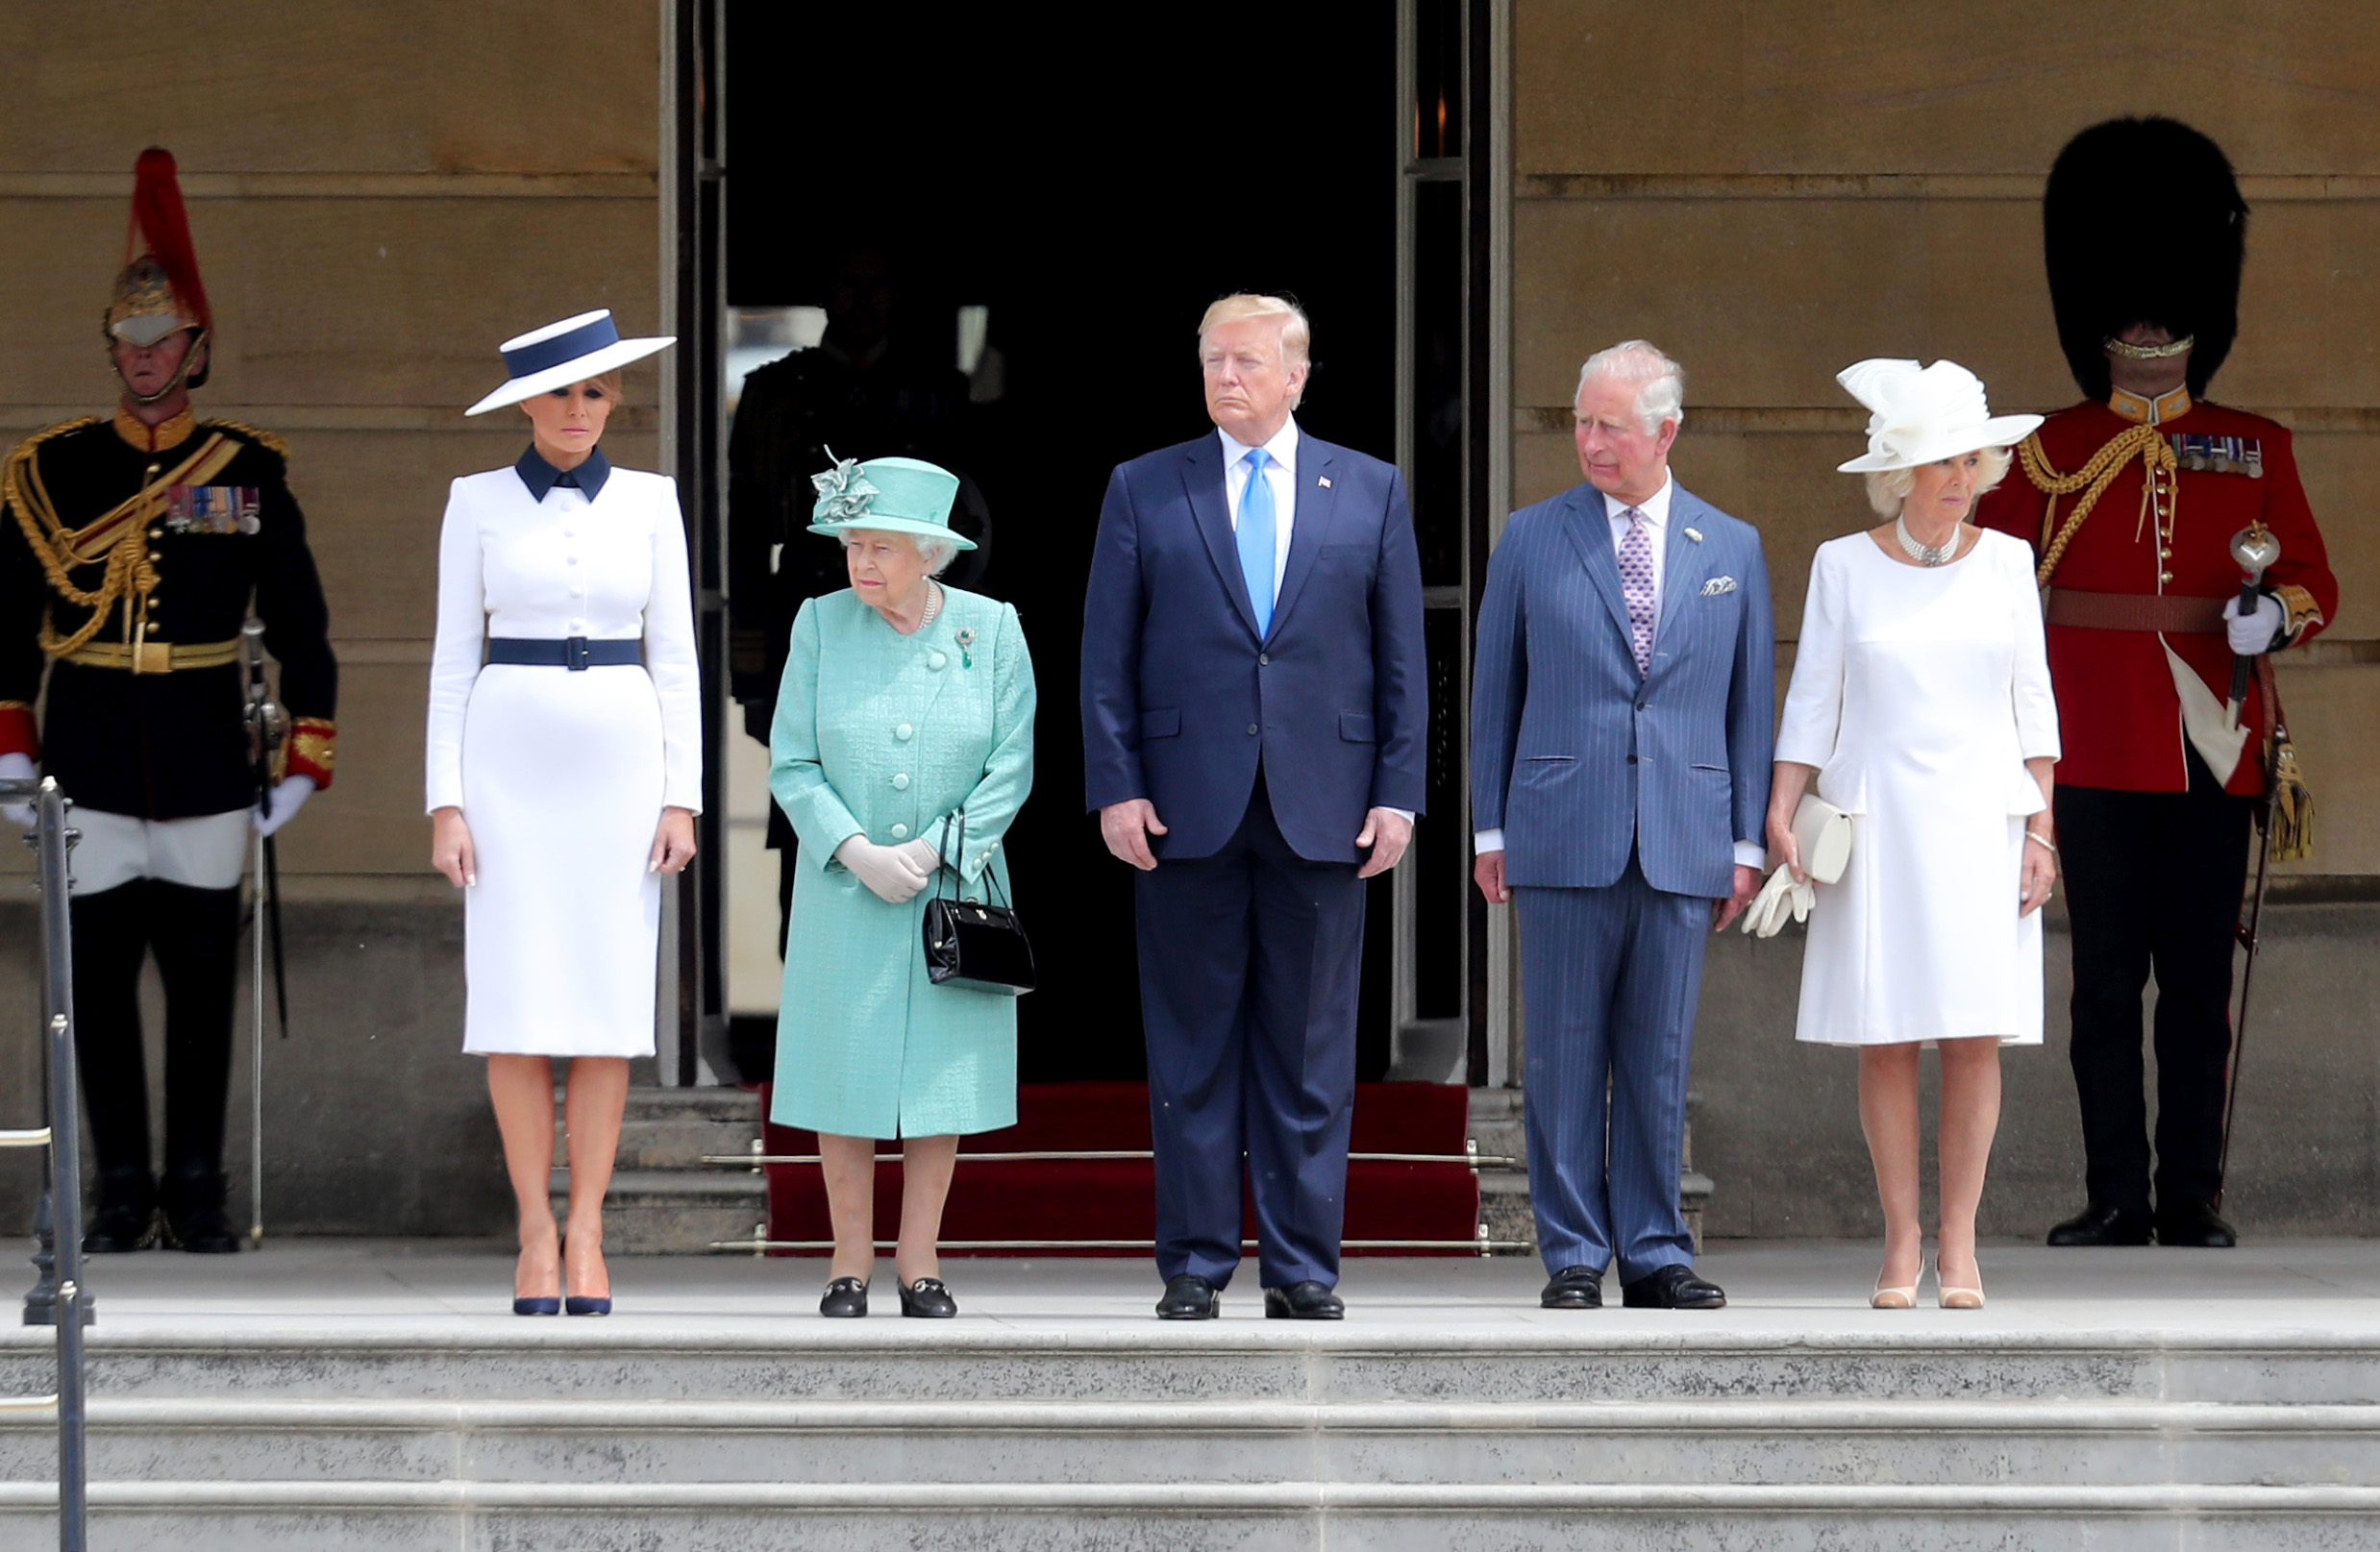 LONDON, ENGLAND - JUNE 03: Queen Elizabeth II (second left) officially welcomes US President Donald Trump (C) and First Lady Melania Trump (L) with Prince Charles, Prince of Wales and Camilla, Duchess of Cornwall (R) during their visit on June 03, 2019 at Buckingham Palace in London, England. President Trump's three-day state visit will include lunch with the Queen, and a State Banquet at Buckingham Palace, as well as business meetings with the Prime Minister and the Duke of York, before travelling to Portsmouth to mark the 75th anniversary of the D-Day landings. (Photo by Chris Jackson/Getty Images)